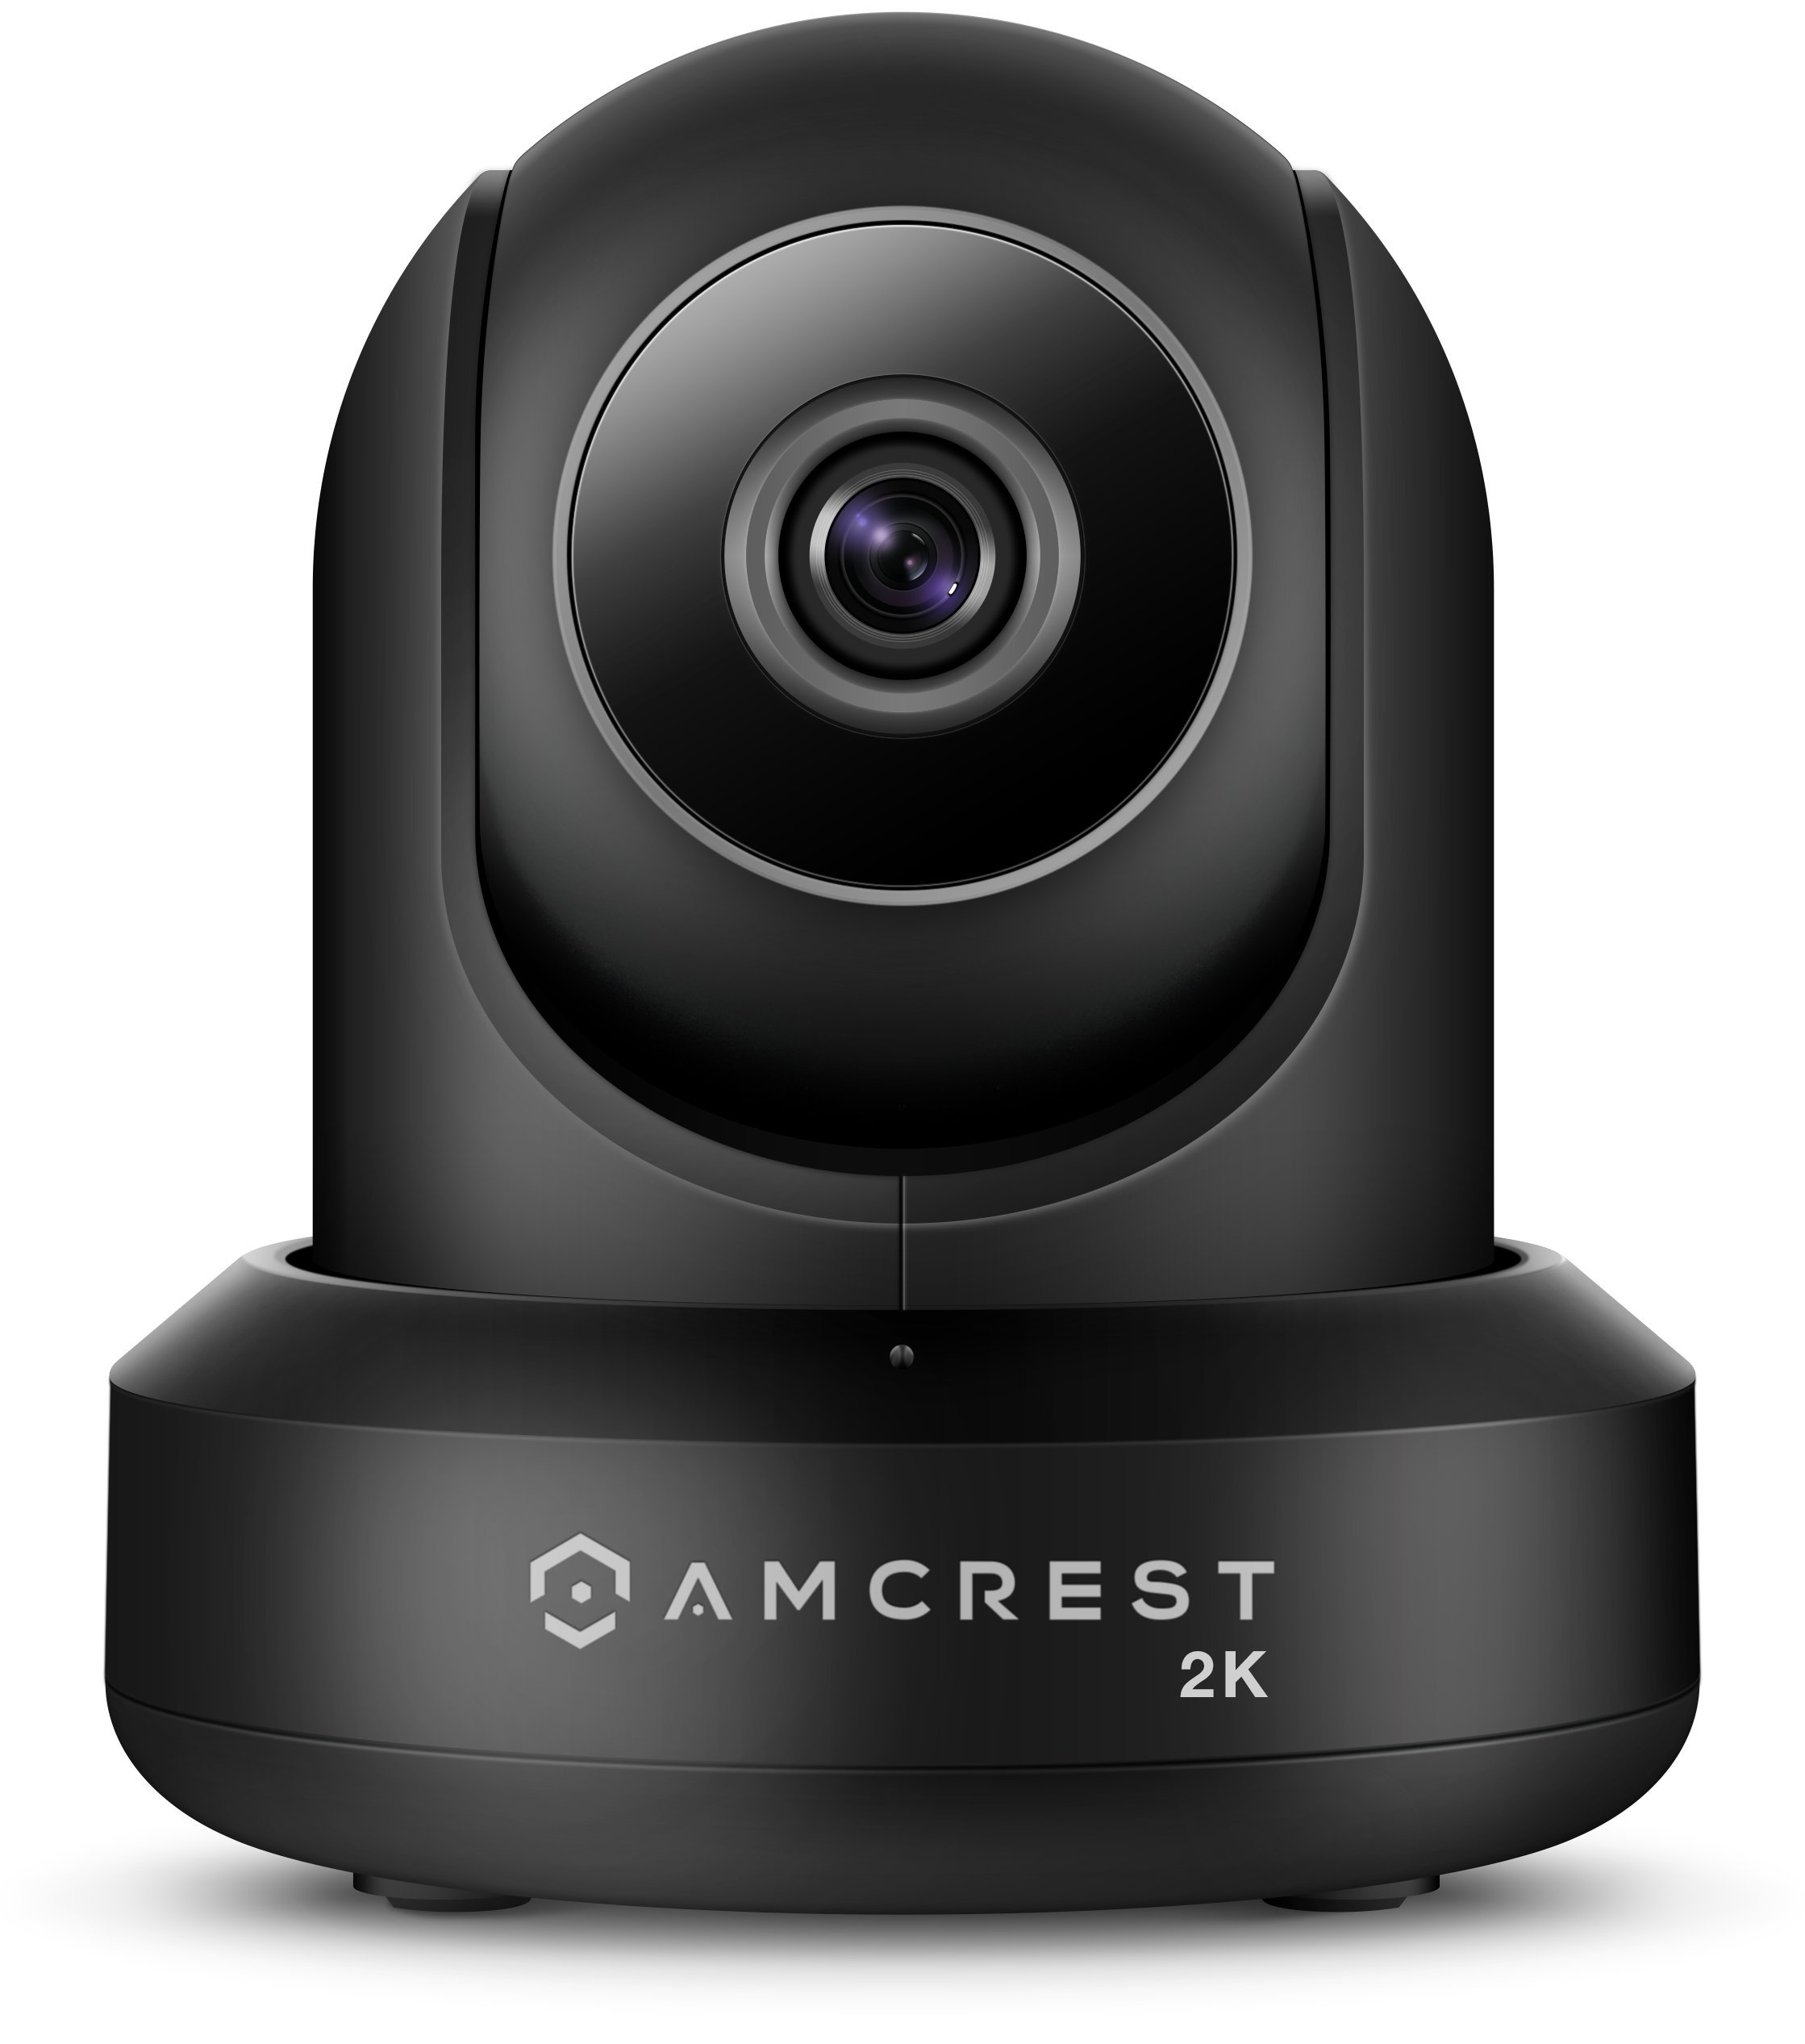 Amcrest UltraHD 2K WiFi Video Security IP Camera w/Pan/Tilt, Dual Band 5ghz/2.4ghz, Two-Way Audio, 3-Megapixel @ 20FPS, Wide 90° Viewing Angle & Night Vision IP3M-941B (Black) (Certified Refurbished)